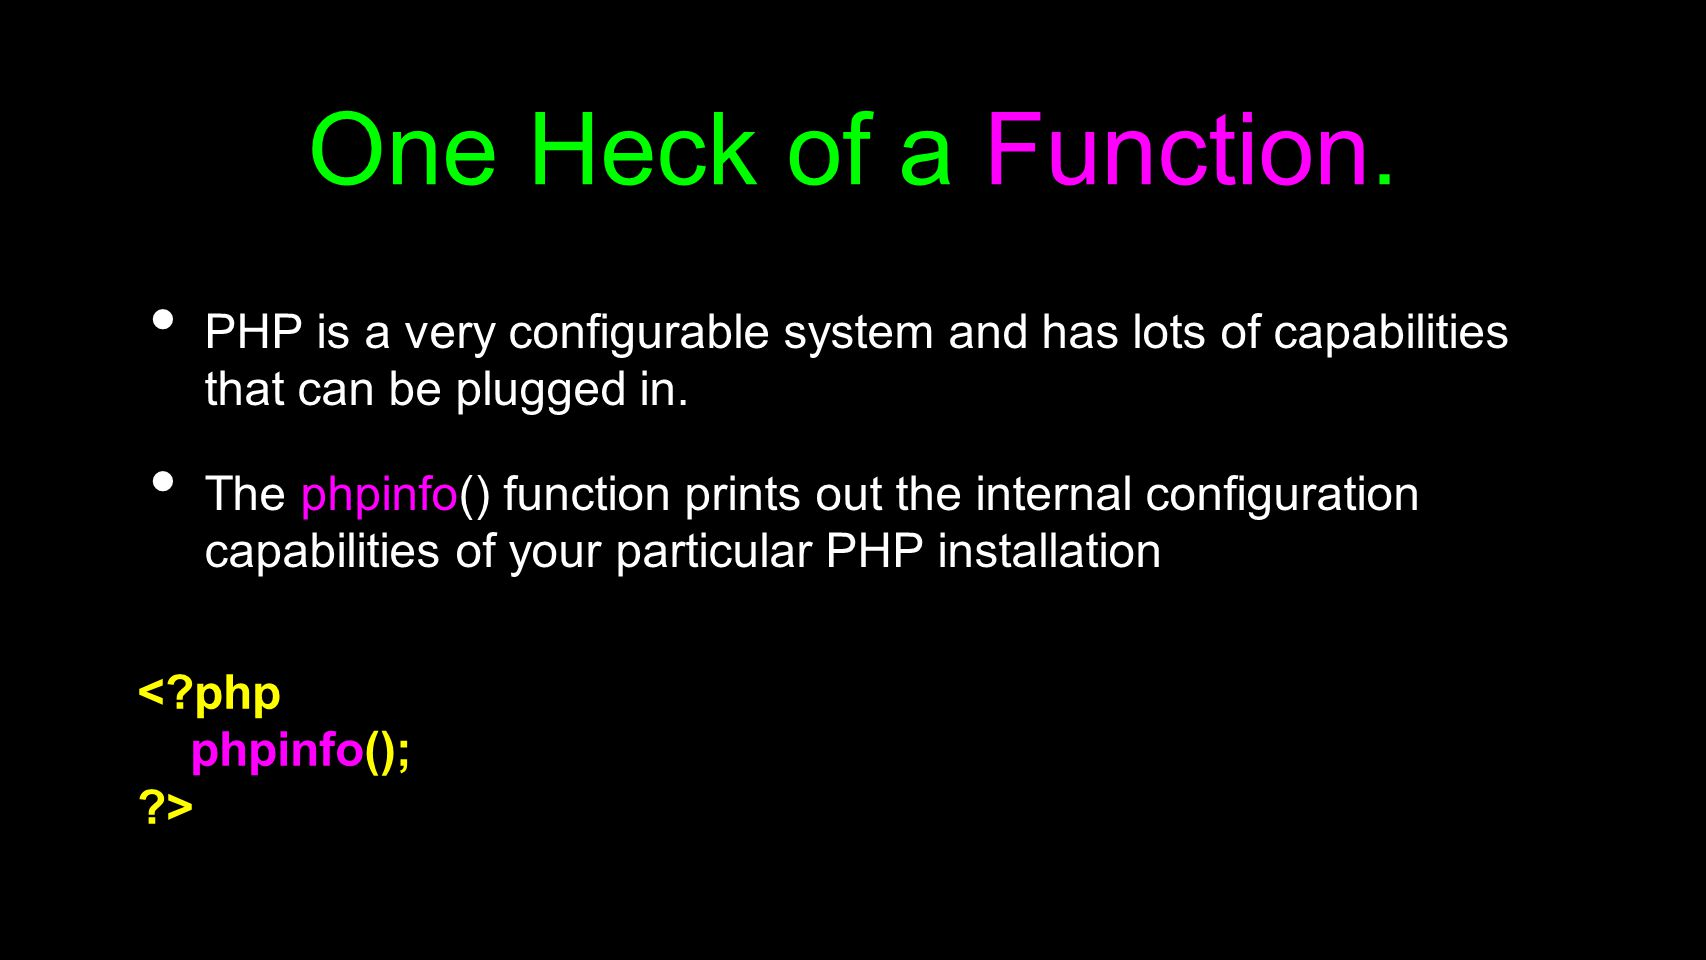 One Heck of a Function. PHP is a very configurable system and has lots of capabilities that can be plugged in.